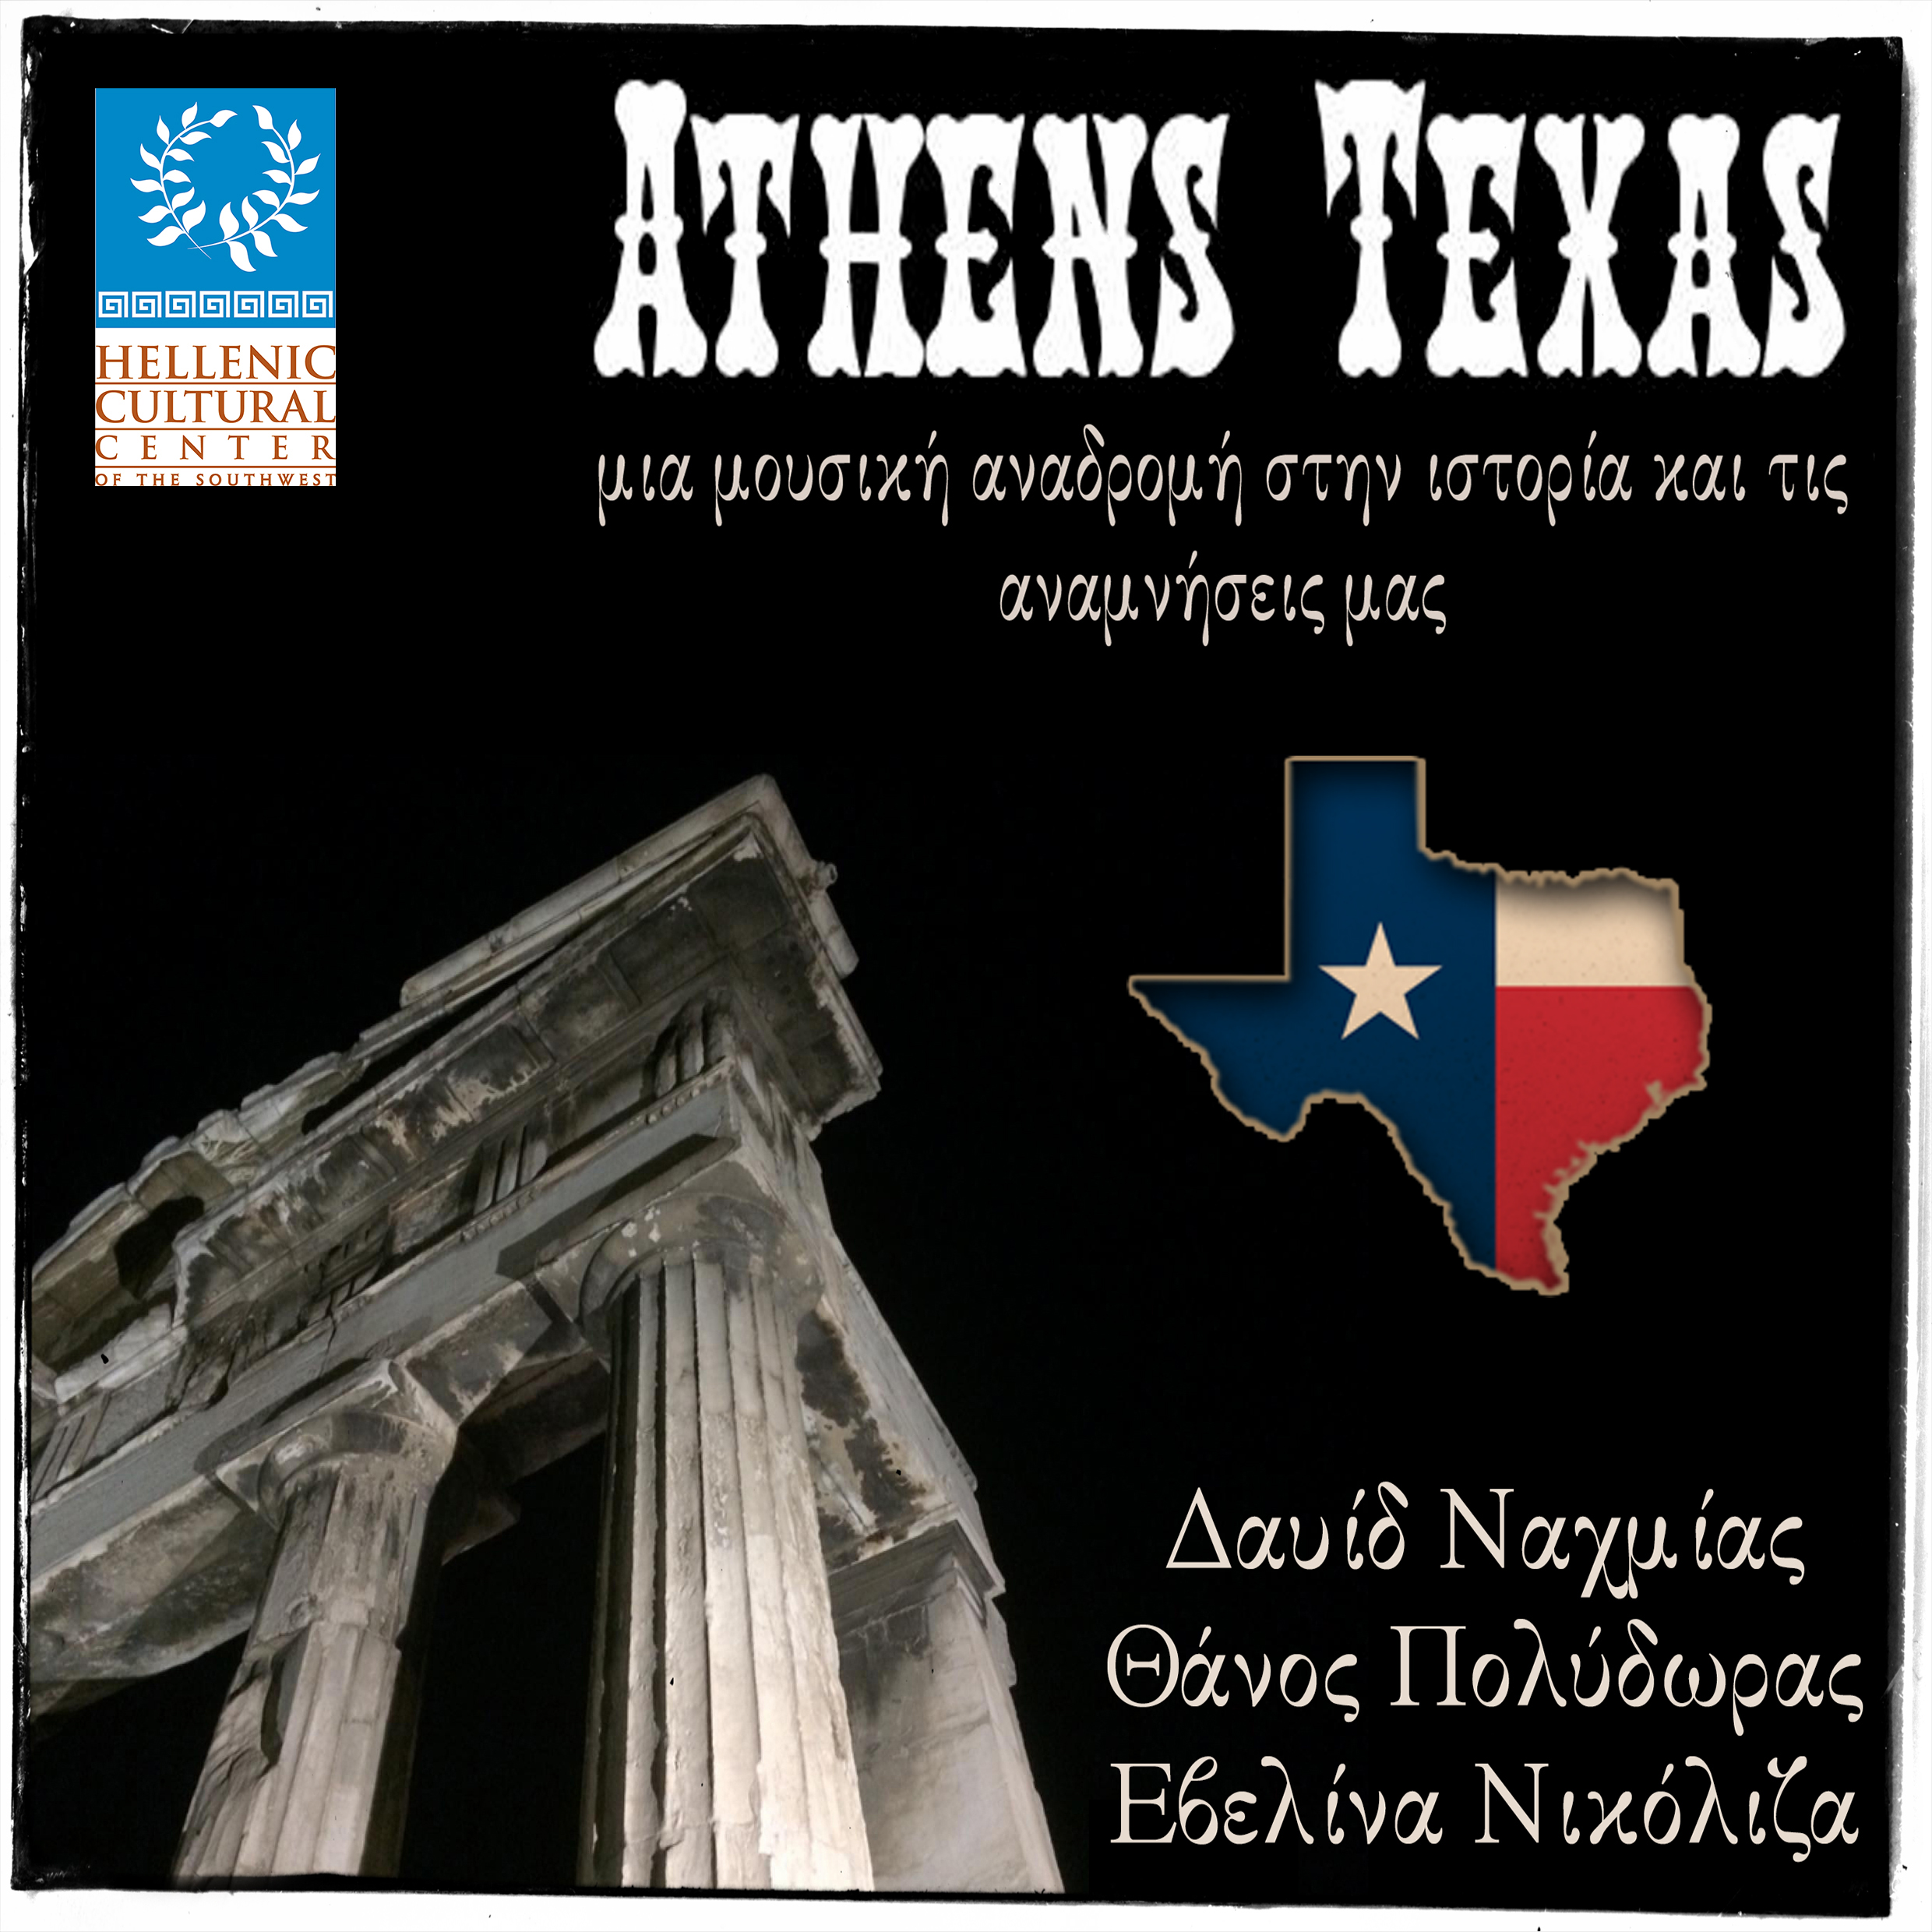 CD ATHENS TEXAS b